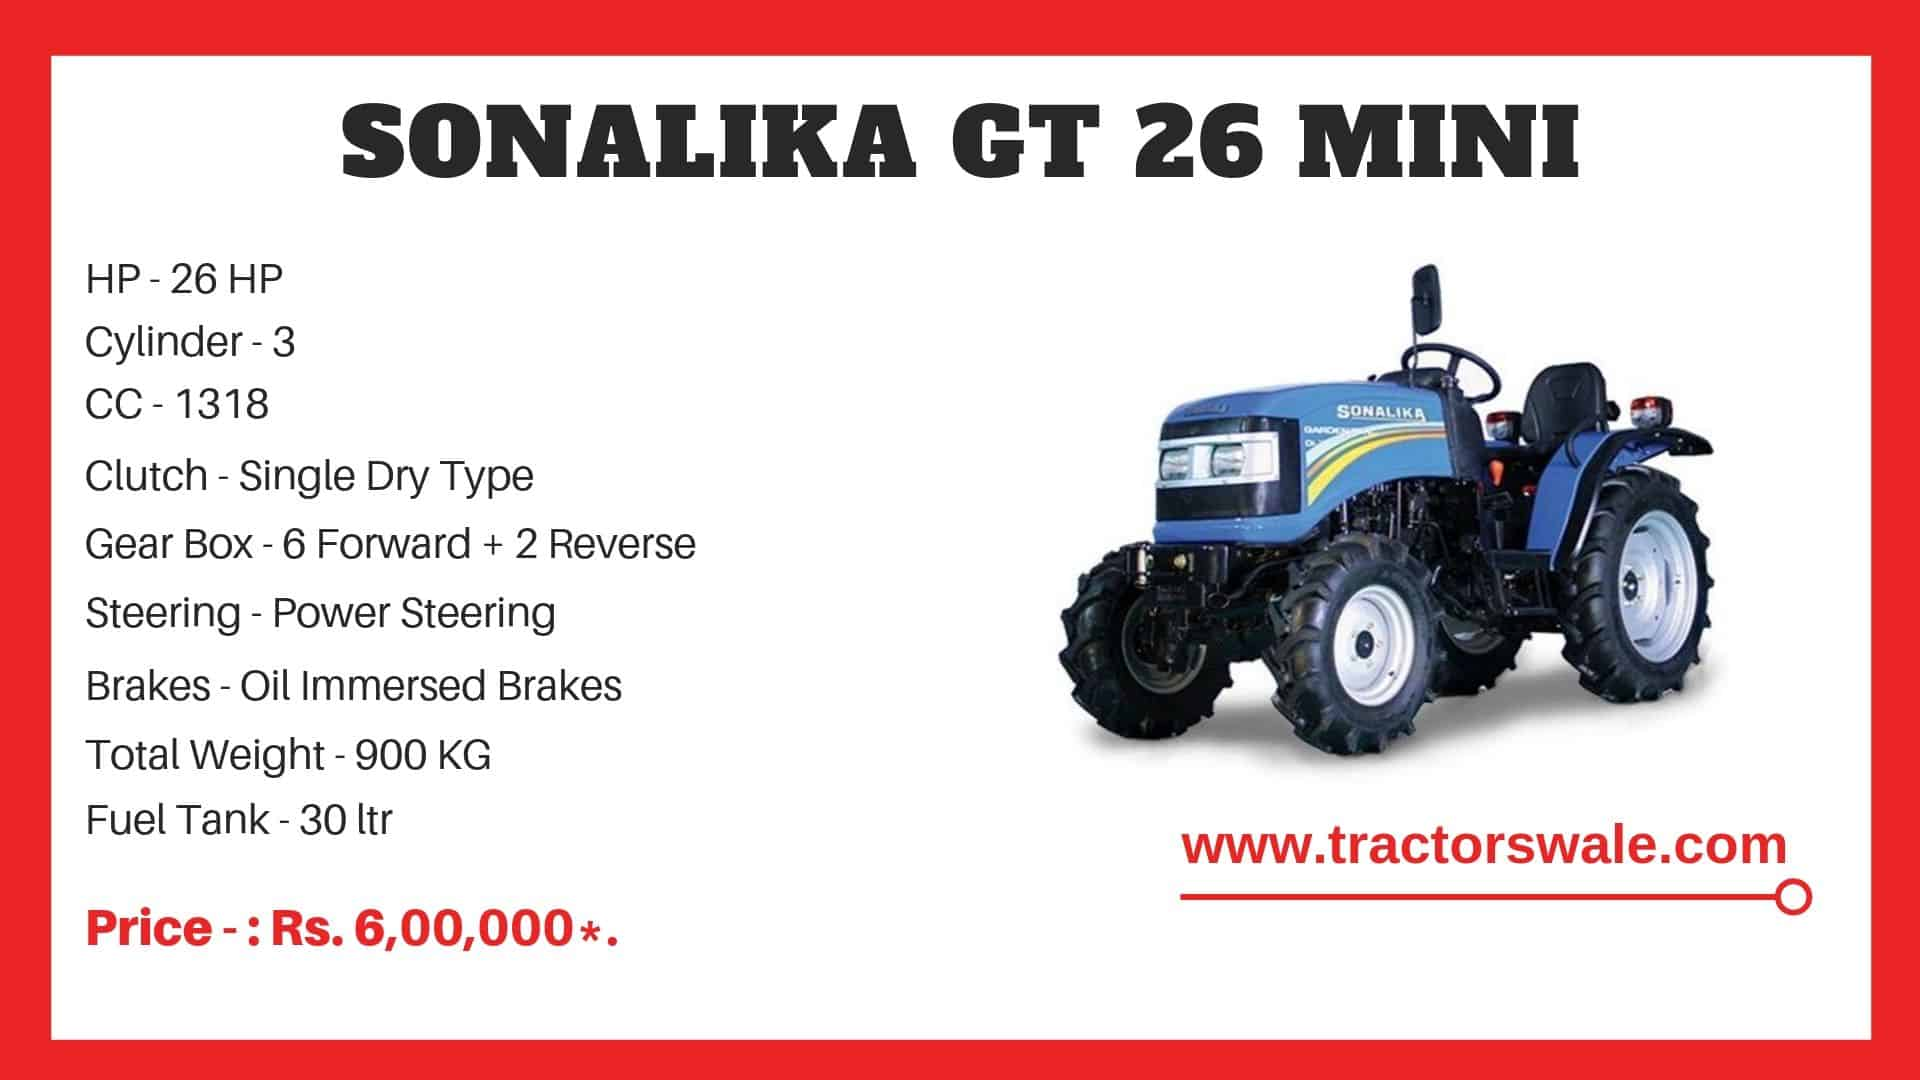 Specifications Of Sonalika GT 26 Mini Tractor